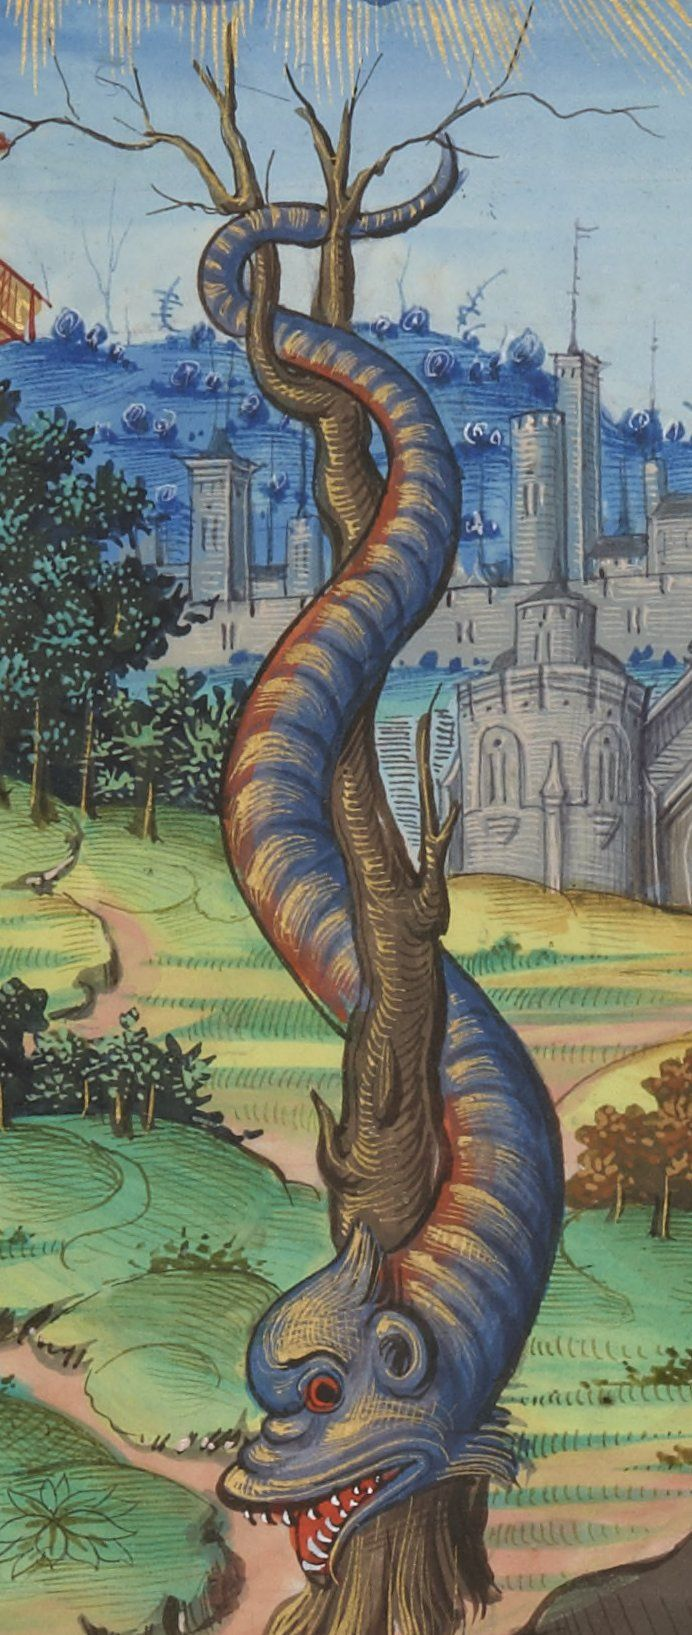 Aldus' dolphin ashore: the Serpent. Chants royaux sur la Conception, couronnés au puy de Rouen de 1519 à 1528. Source: gallica.bnf.fr